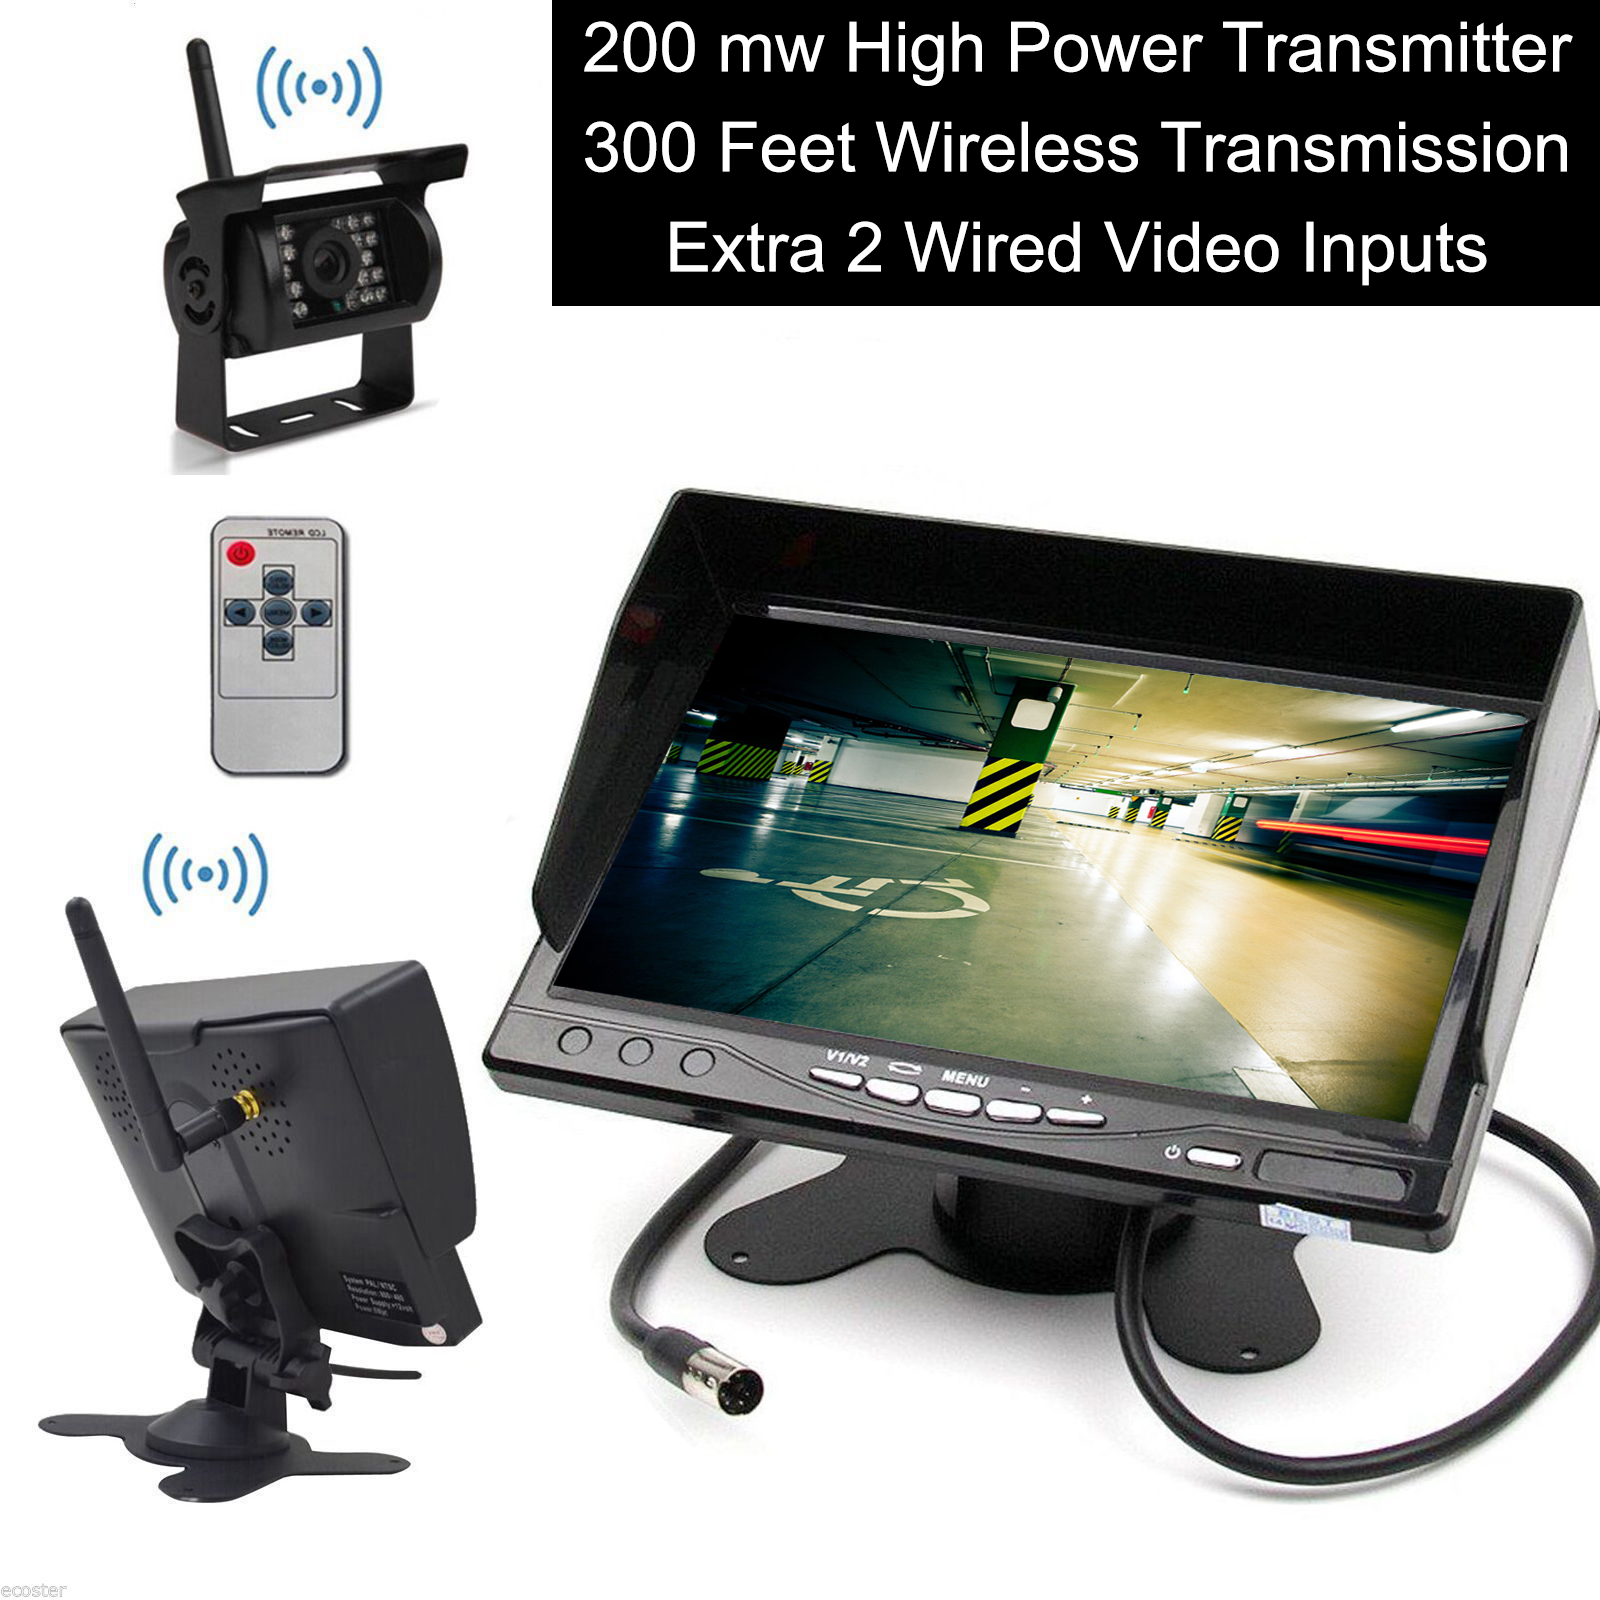 Built-in Wireless Truck Parking System - 12-24V Backup Camera + 7 inch HD